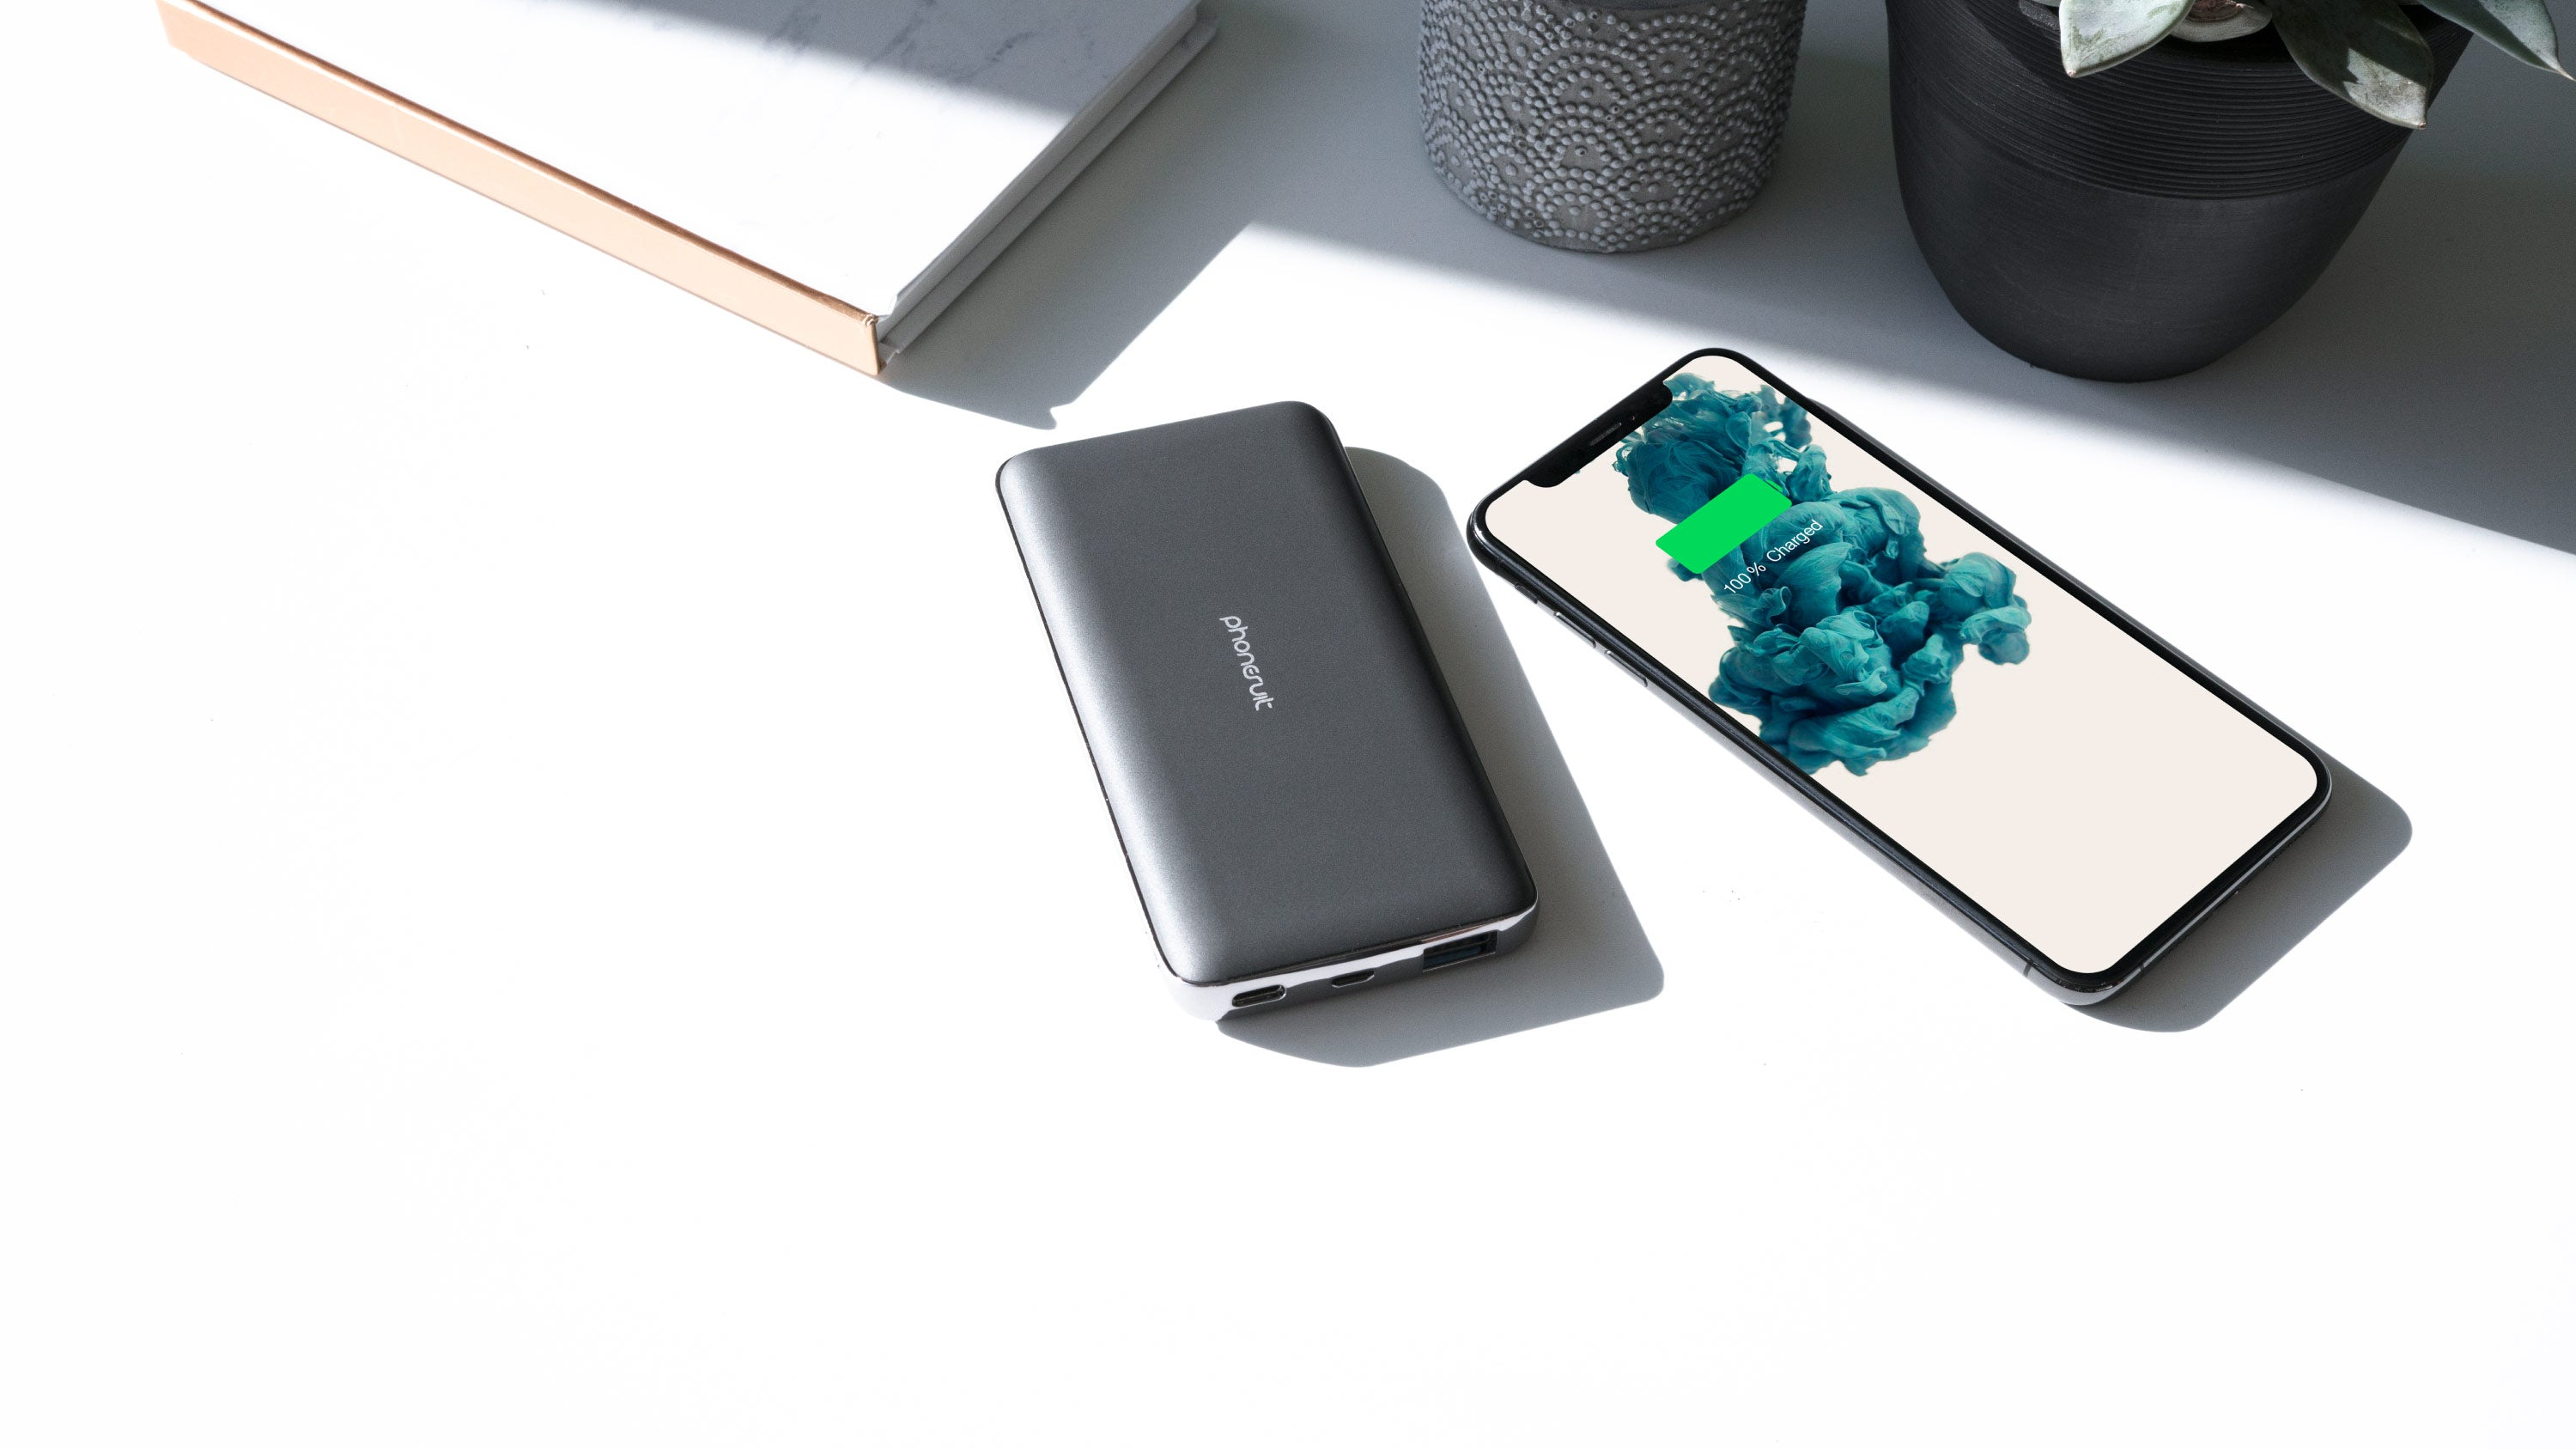 Energy Core PD & QC Fast Charging Battery Pack for iPhone, Samsung & More